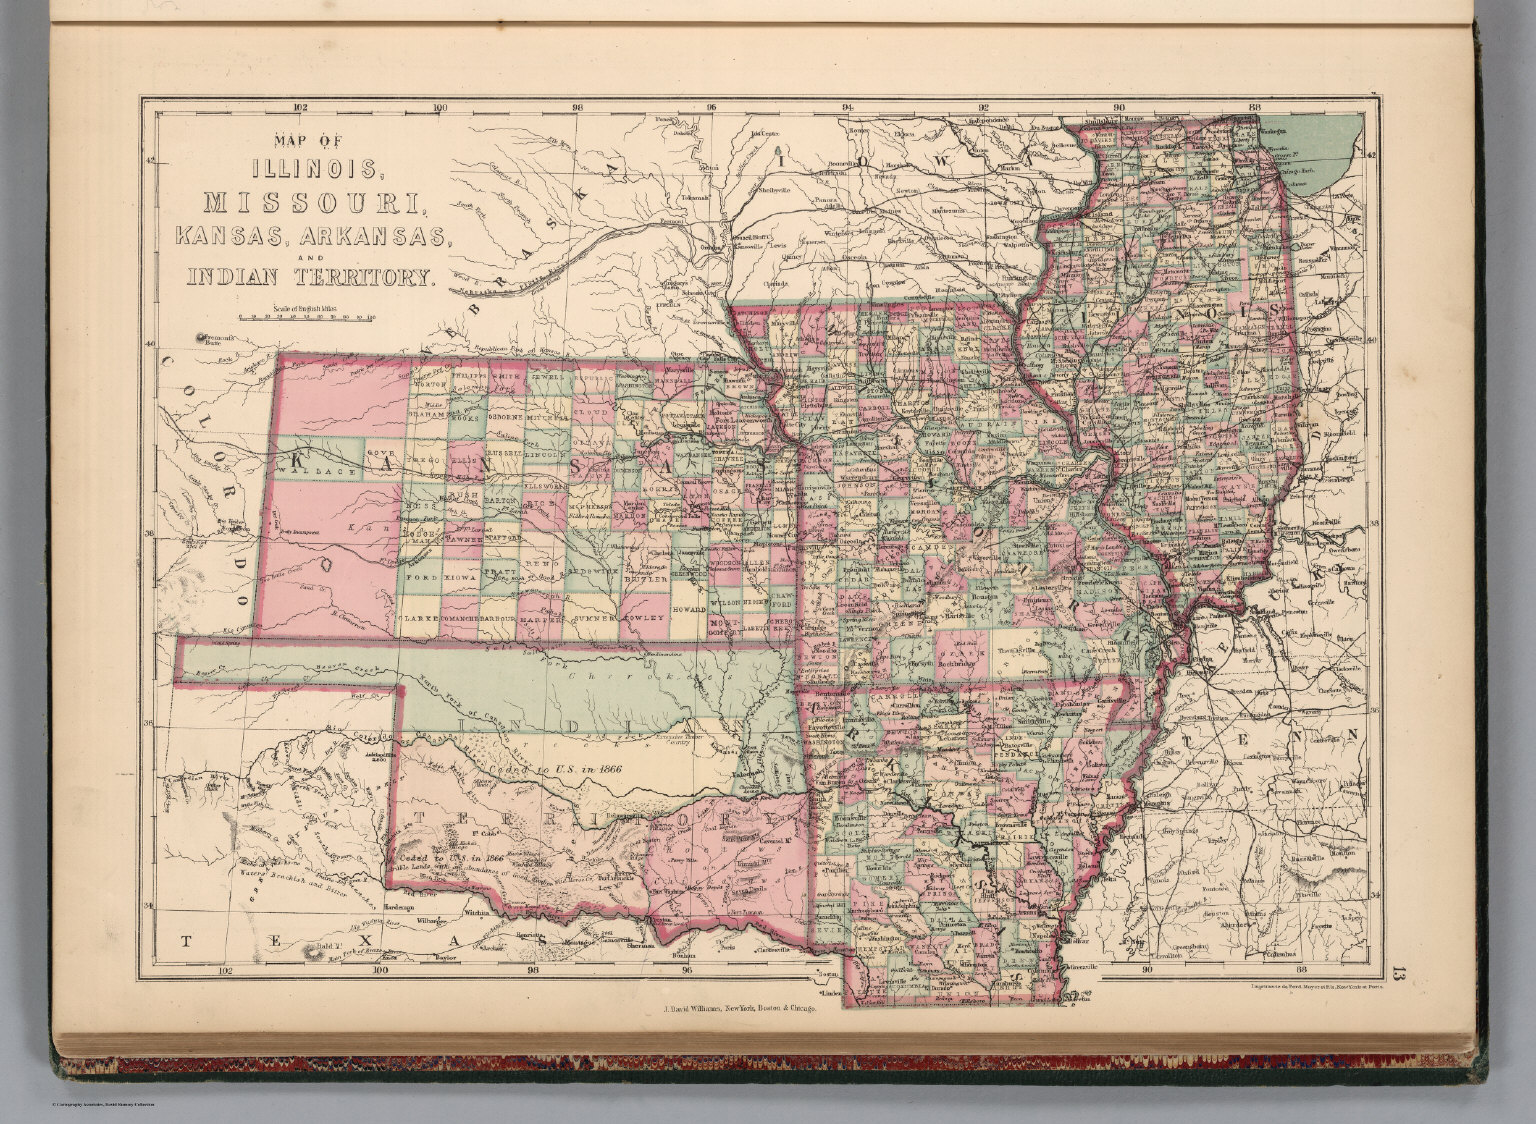 Illinois Missouri Kansas Arkansas and Indian Territory David